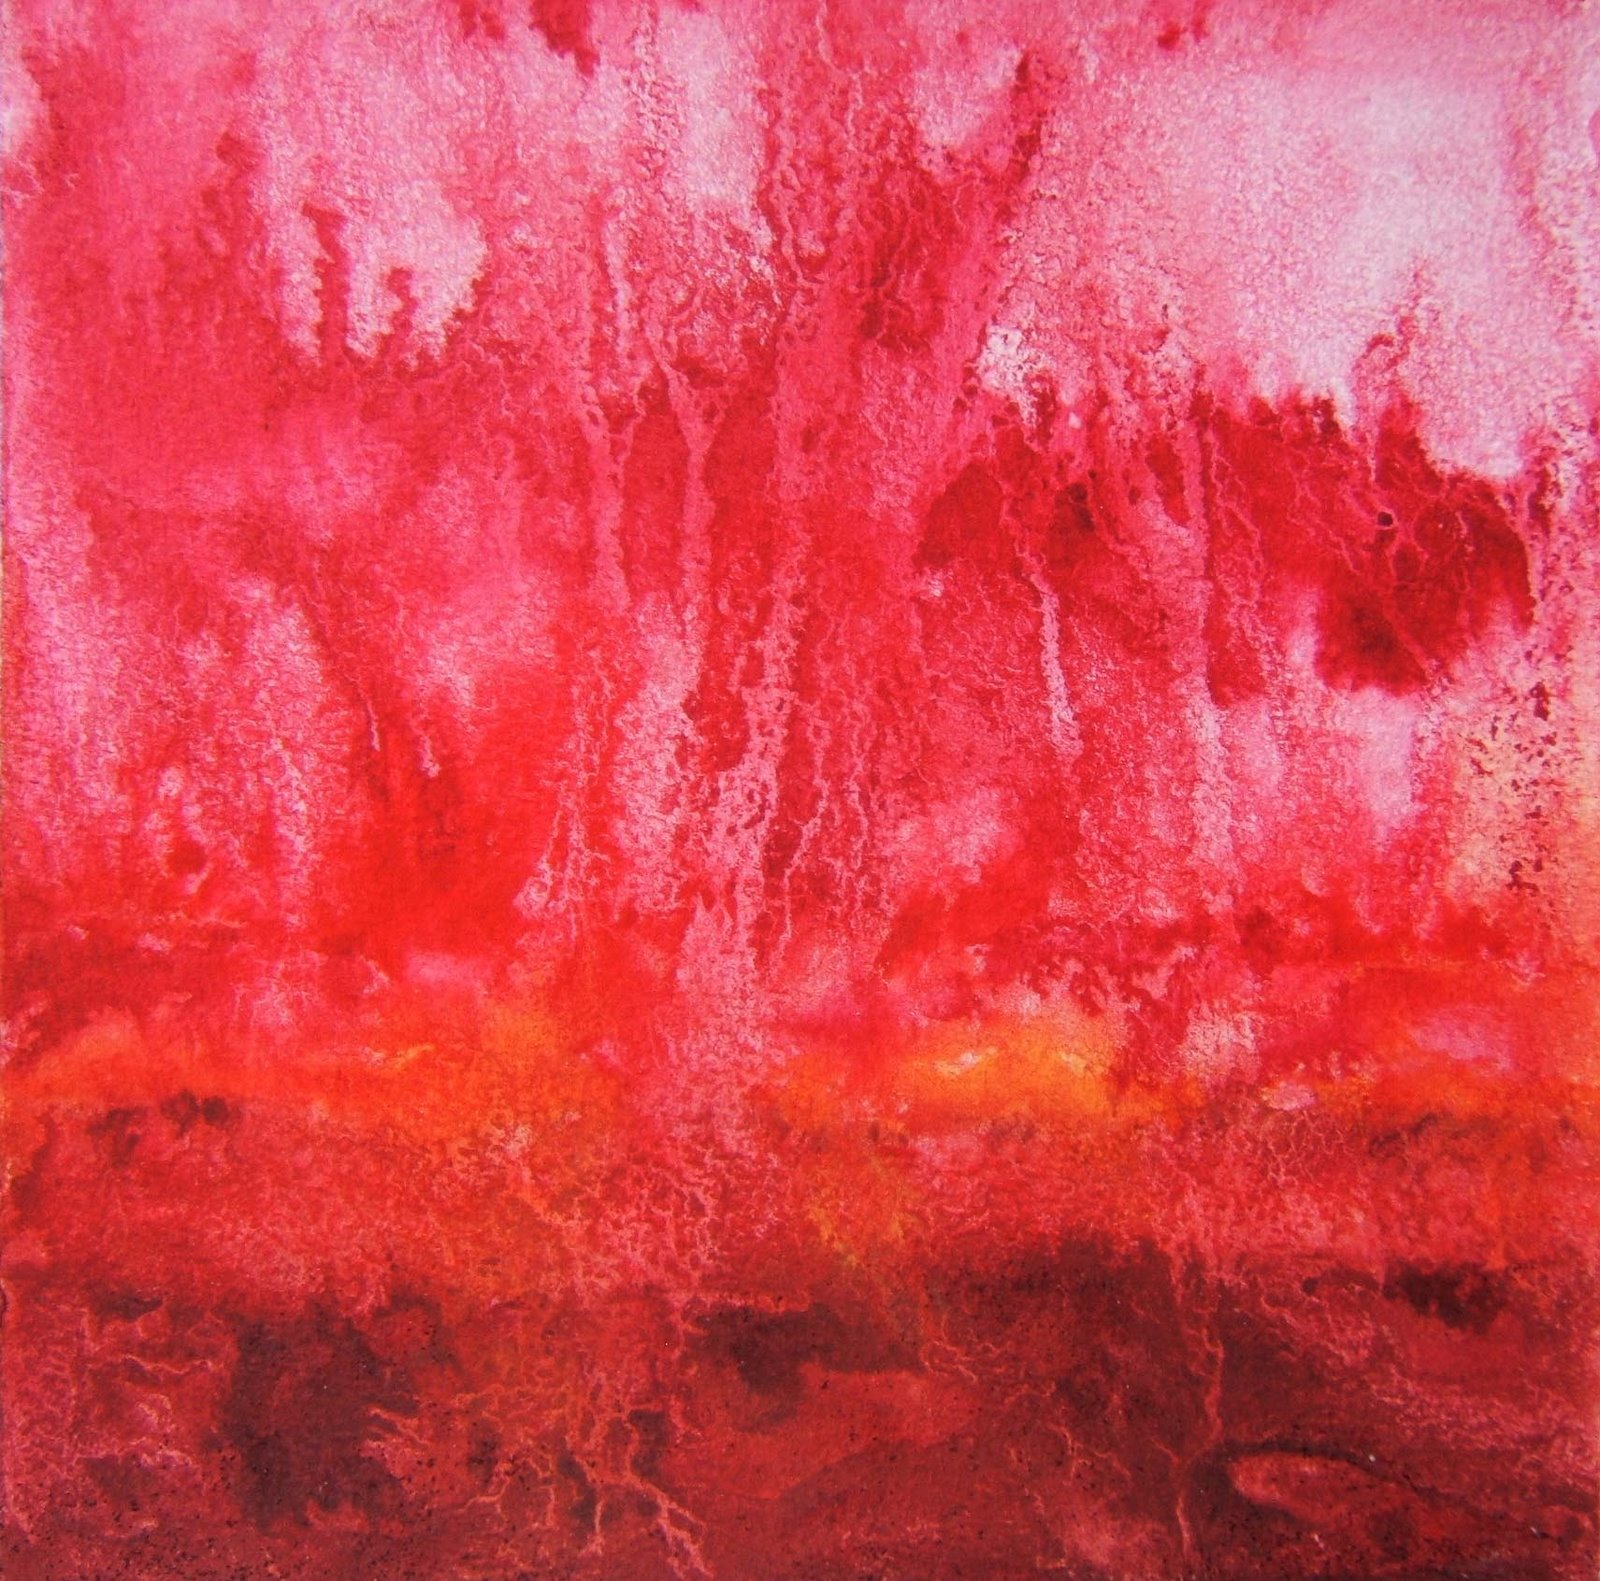 """Waiting"" 7""x 7"" watercolor on paper, © 2008 Tina M Welter #1 Pearl Series  Red roots reaching into the ground of ideas."